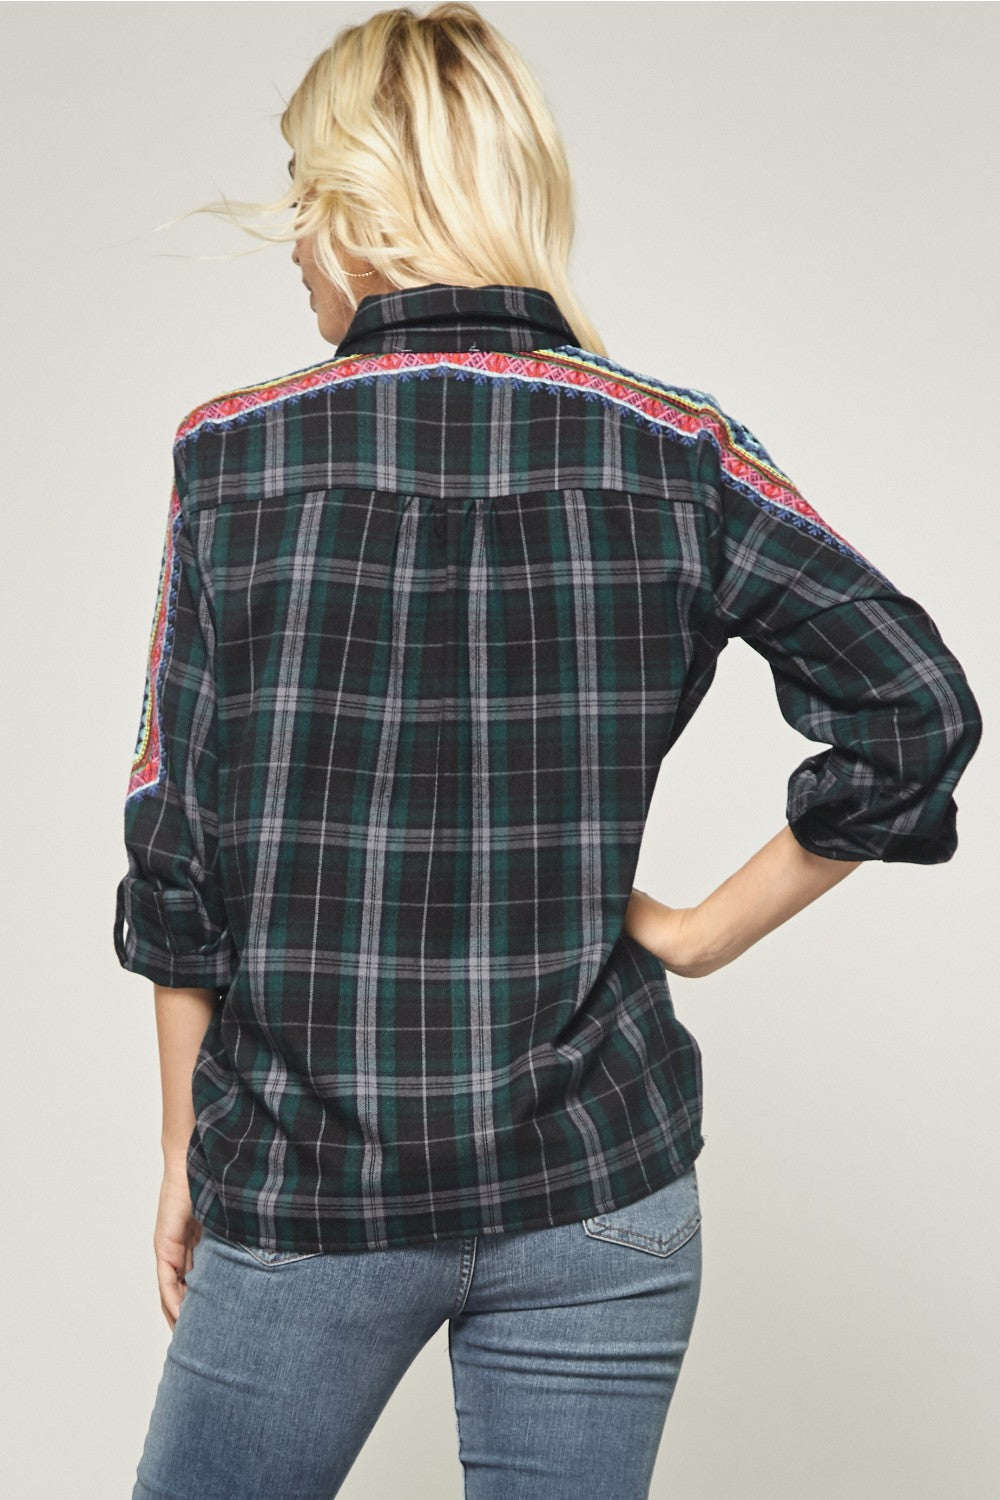 Plaid Top w/ Front Embroidery Detail in Black